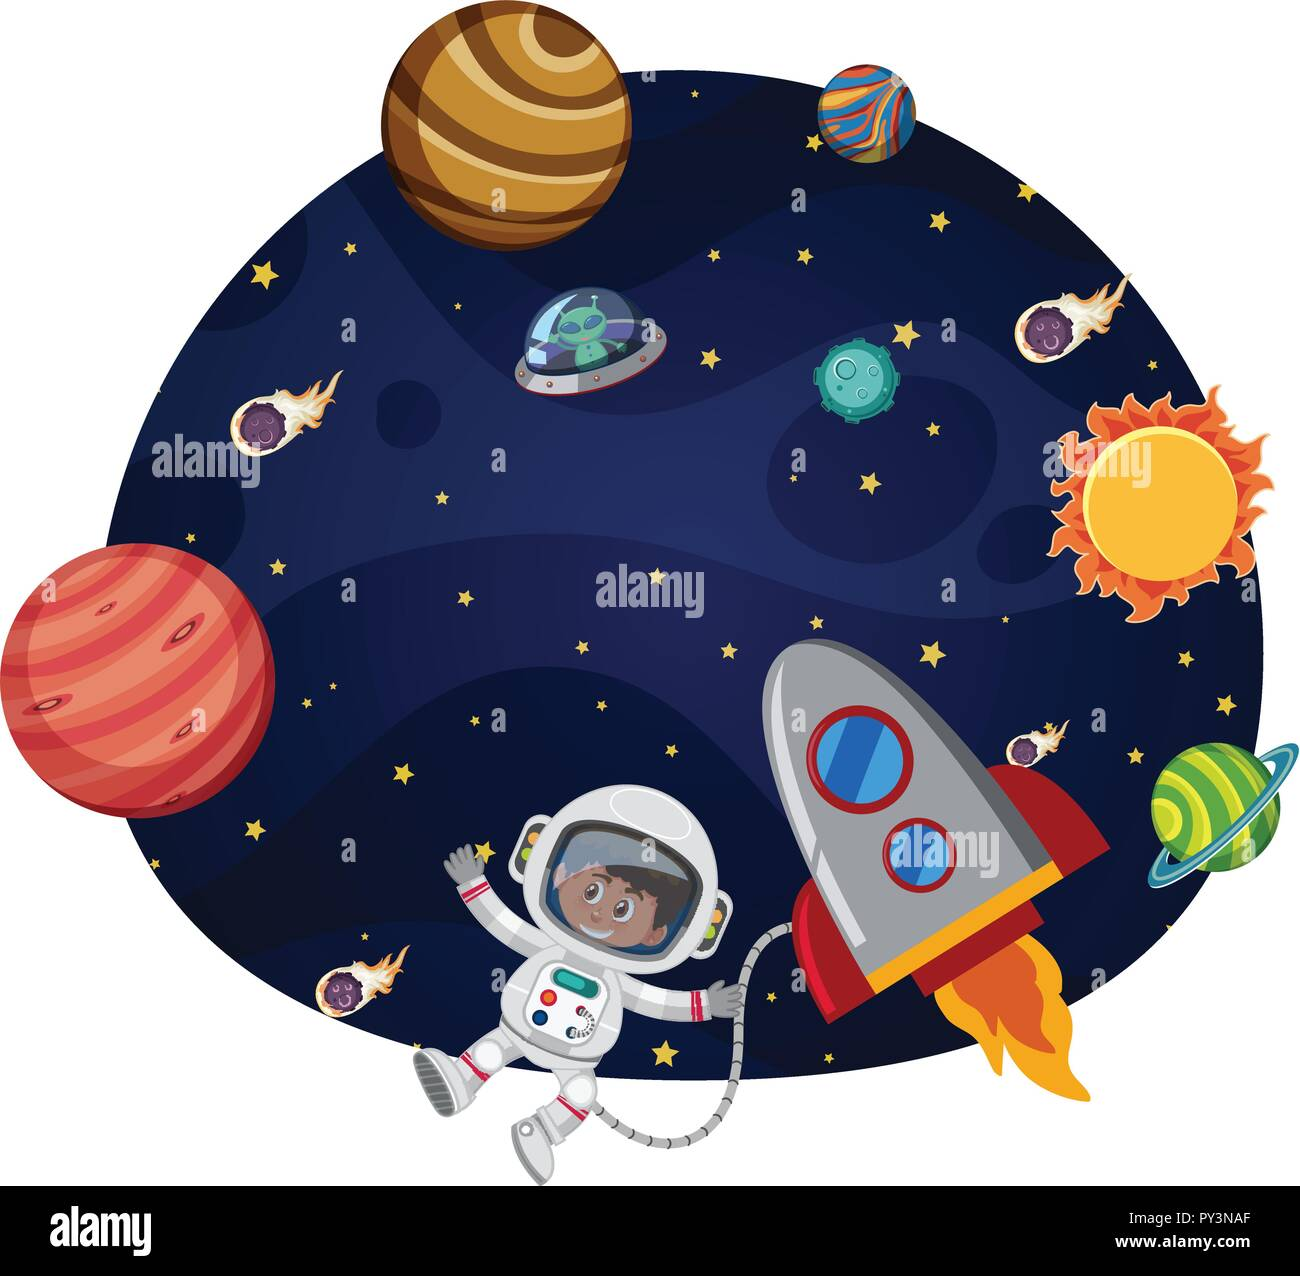 astronaut in space stock photos astronaut in space stock images